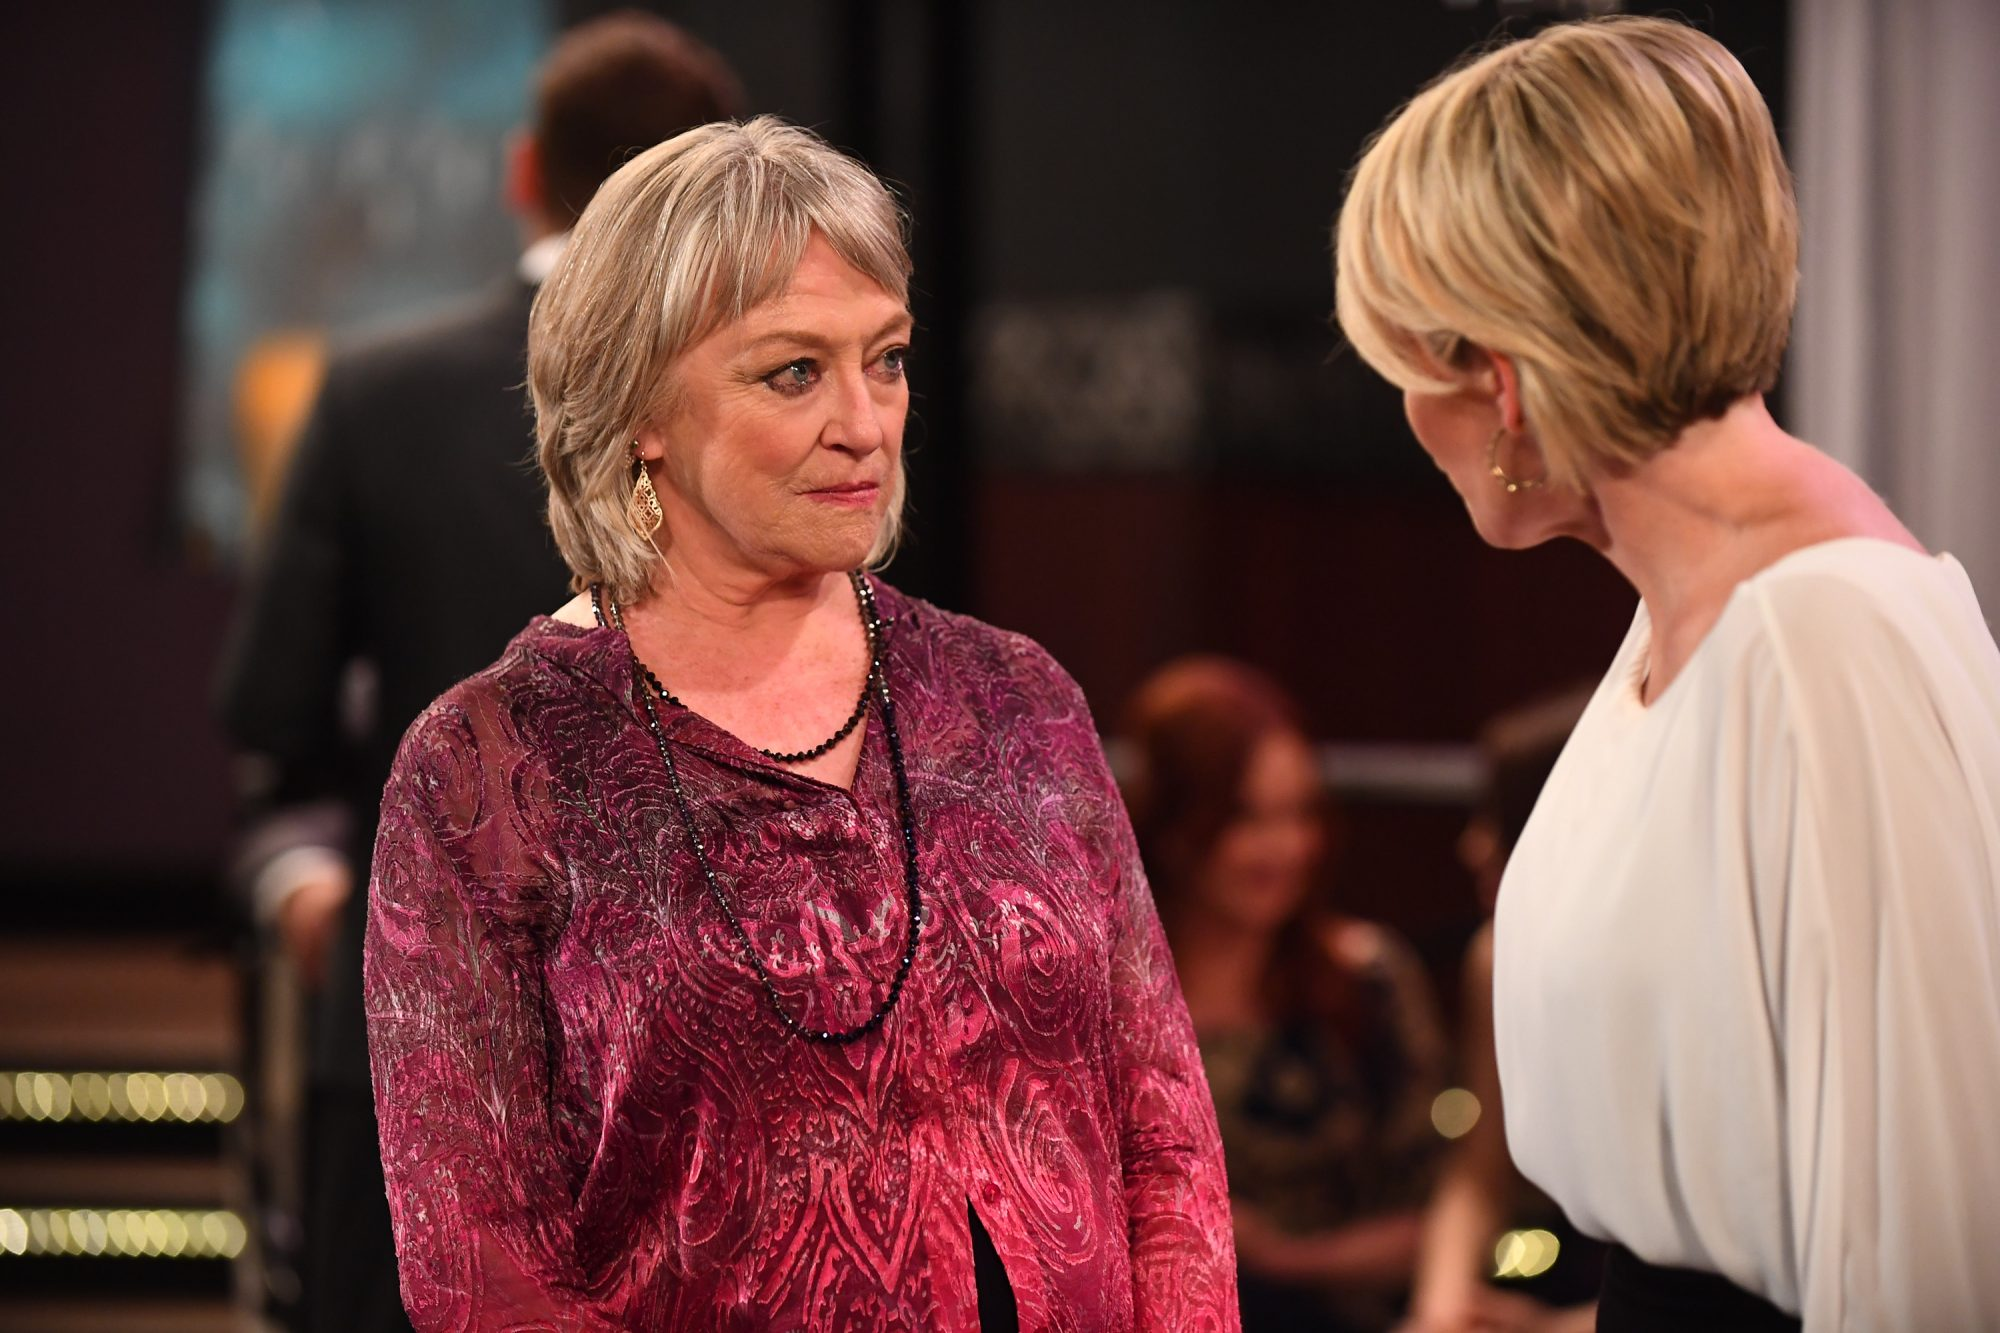 """GENERAL HOSPITAL - Scenes that air from the week of July 1, 2019 through the week of July 8, 2019 on ABC's """"General Hospital."""" """"General Hospital"""" airs Monday-Friday, 3-4pm, ET on ABC. (Walt Disney Television/Matt Petit) VERONICA CARTWRIGHT, MAURA WEST"""